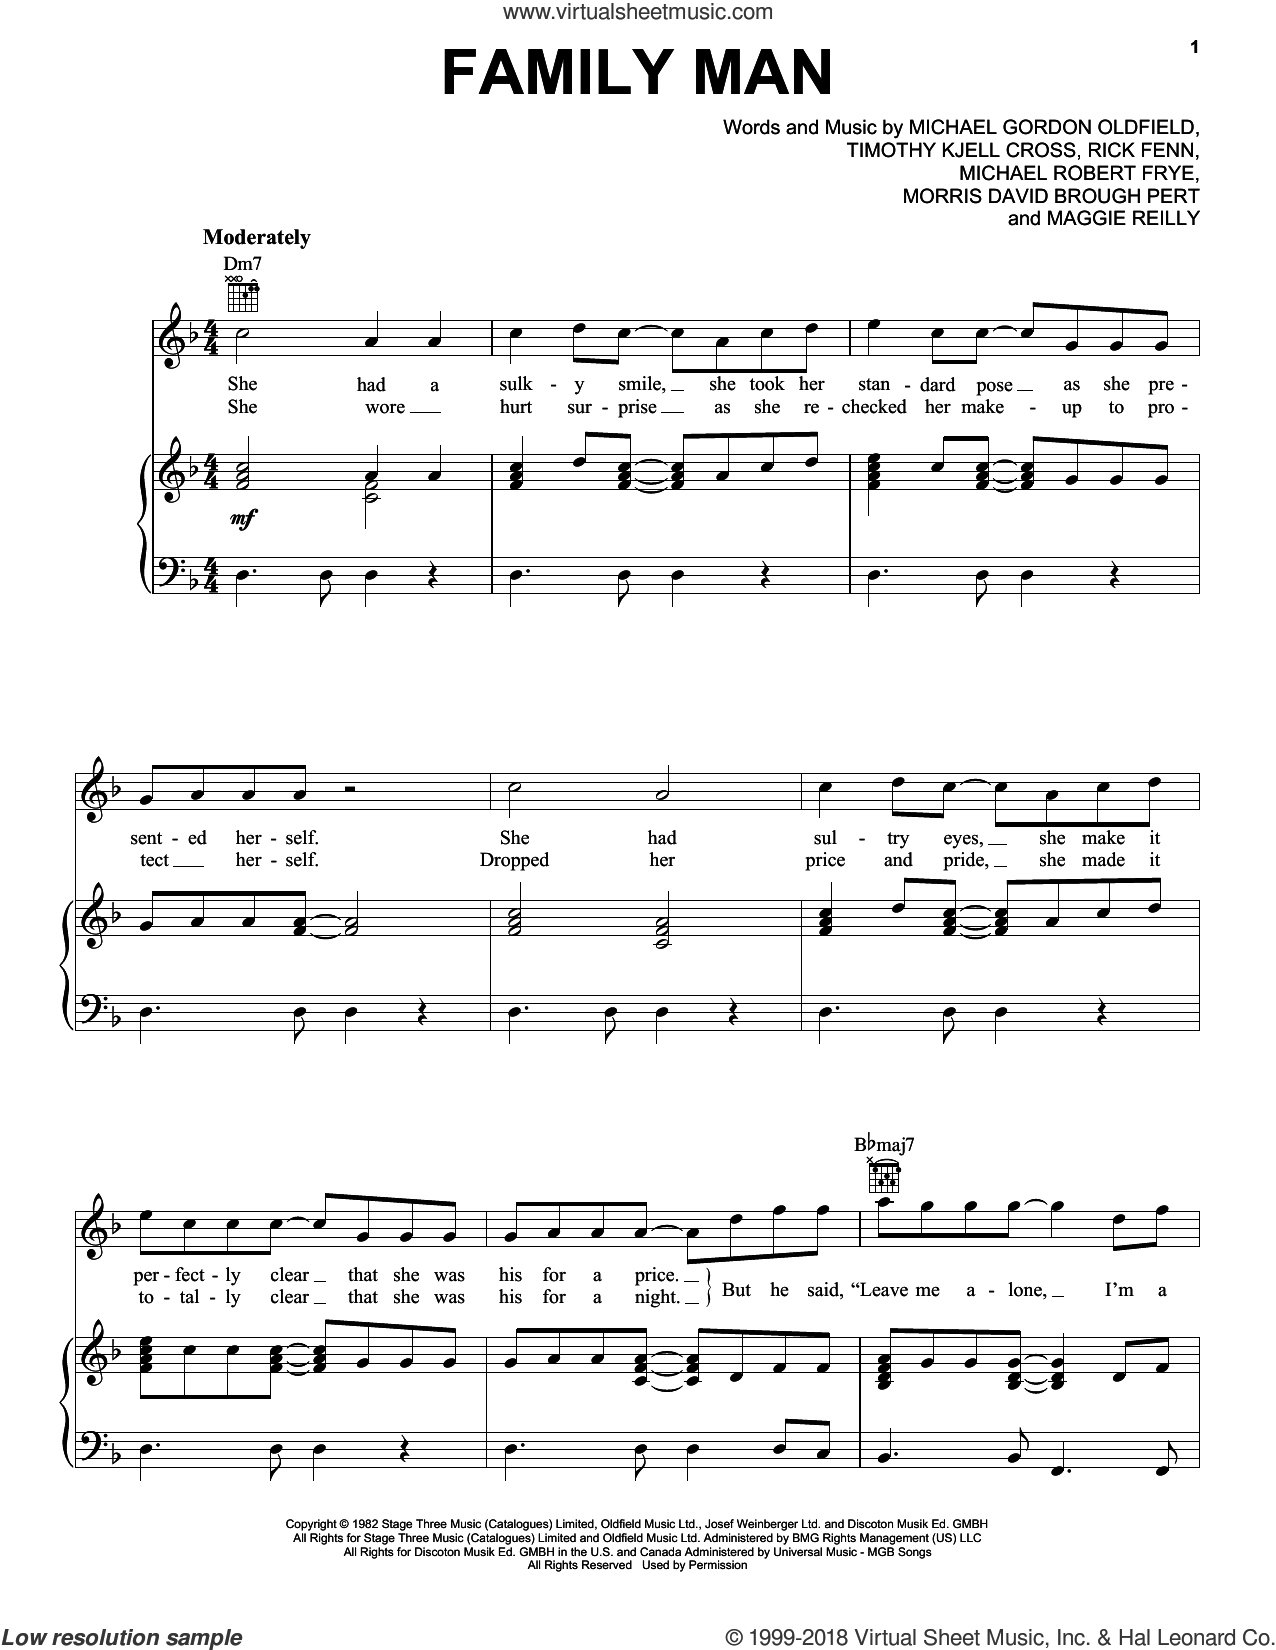 Family Man sheet music for voice, piano or guitar by Hall and Oates, Daryl Hall, Daryl Hall & John Oates, John Oates, Maggie Reilly, Michael Gordon Oldfield, Michael Robert Frye, Morris David Brough Pert, Rick Fenn and Timothy Kjell Cross, intermediate skill level